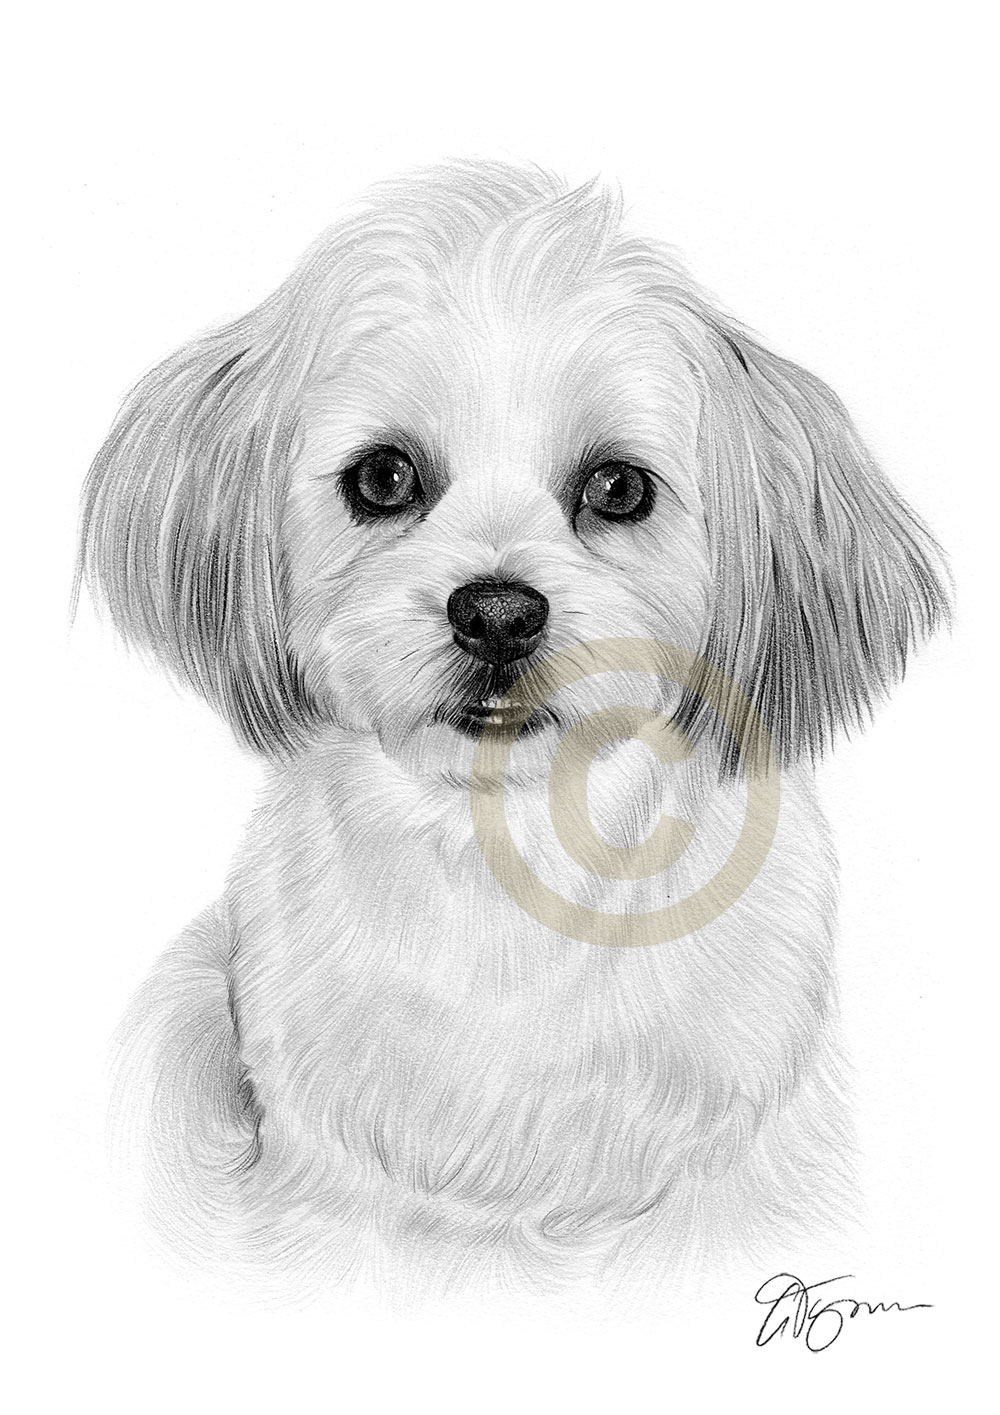 Pet portrait commission of a Shih Tzu by artist Gary Tymon